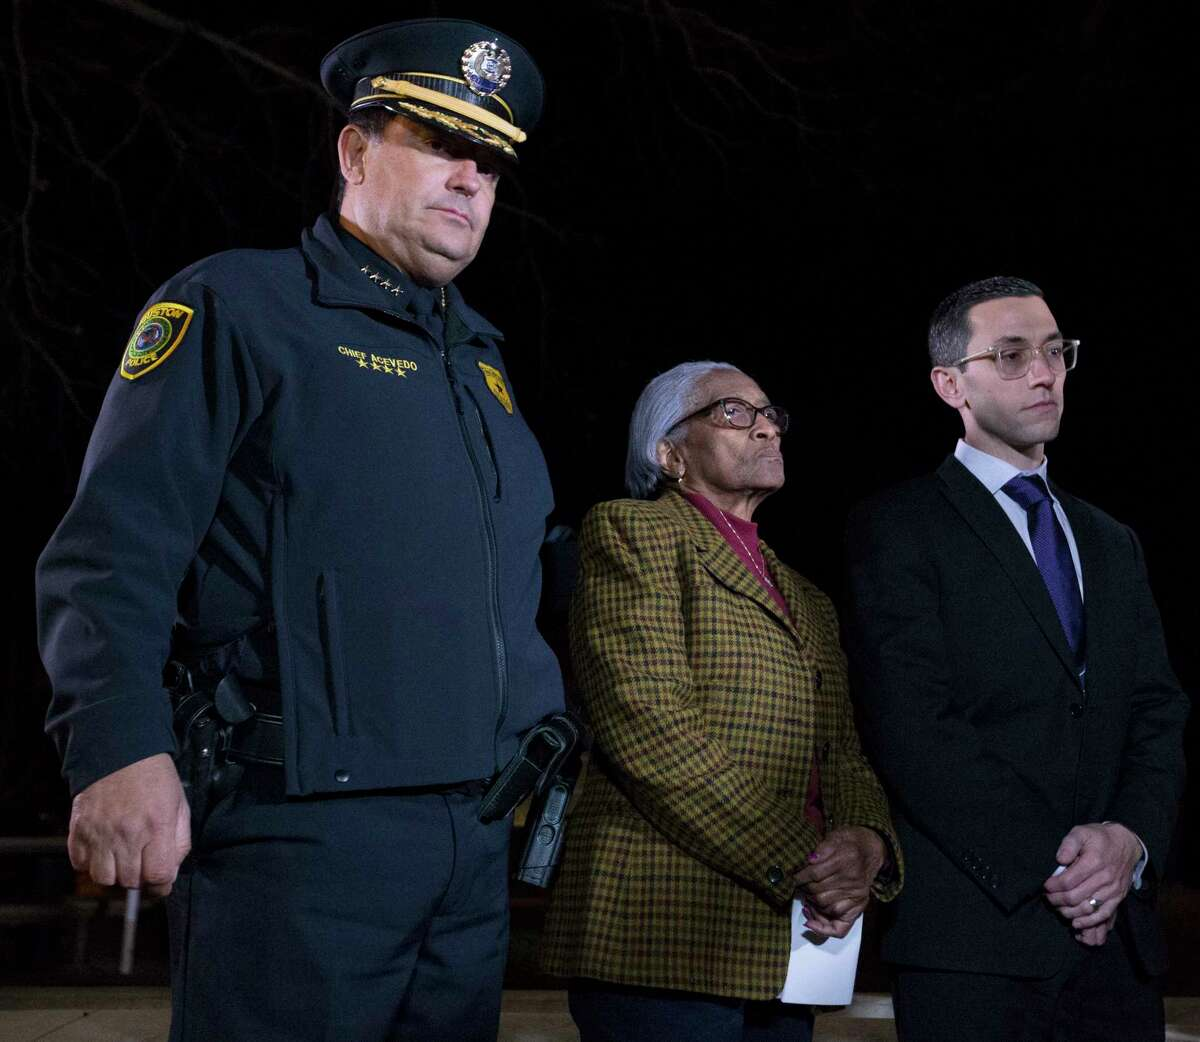 Houston Police Chief Art Acevedo, from left, Era Howard, mother of murdered officer Elston Howard, and Houston Police Officers' Union President Joseph Gamaldi are photographed during a press conference after Robert Jenning's execution on Wednesday, Jan. 30, 2019, in Huntsville. Howard was fatally shot by Jennings on July 19, 1988.